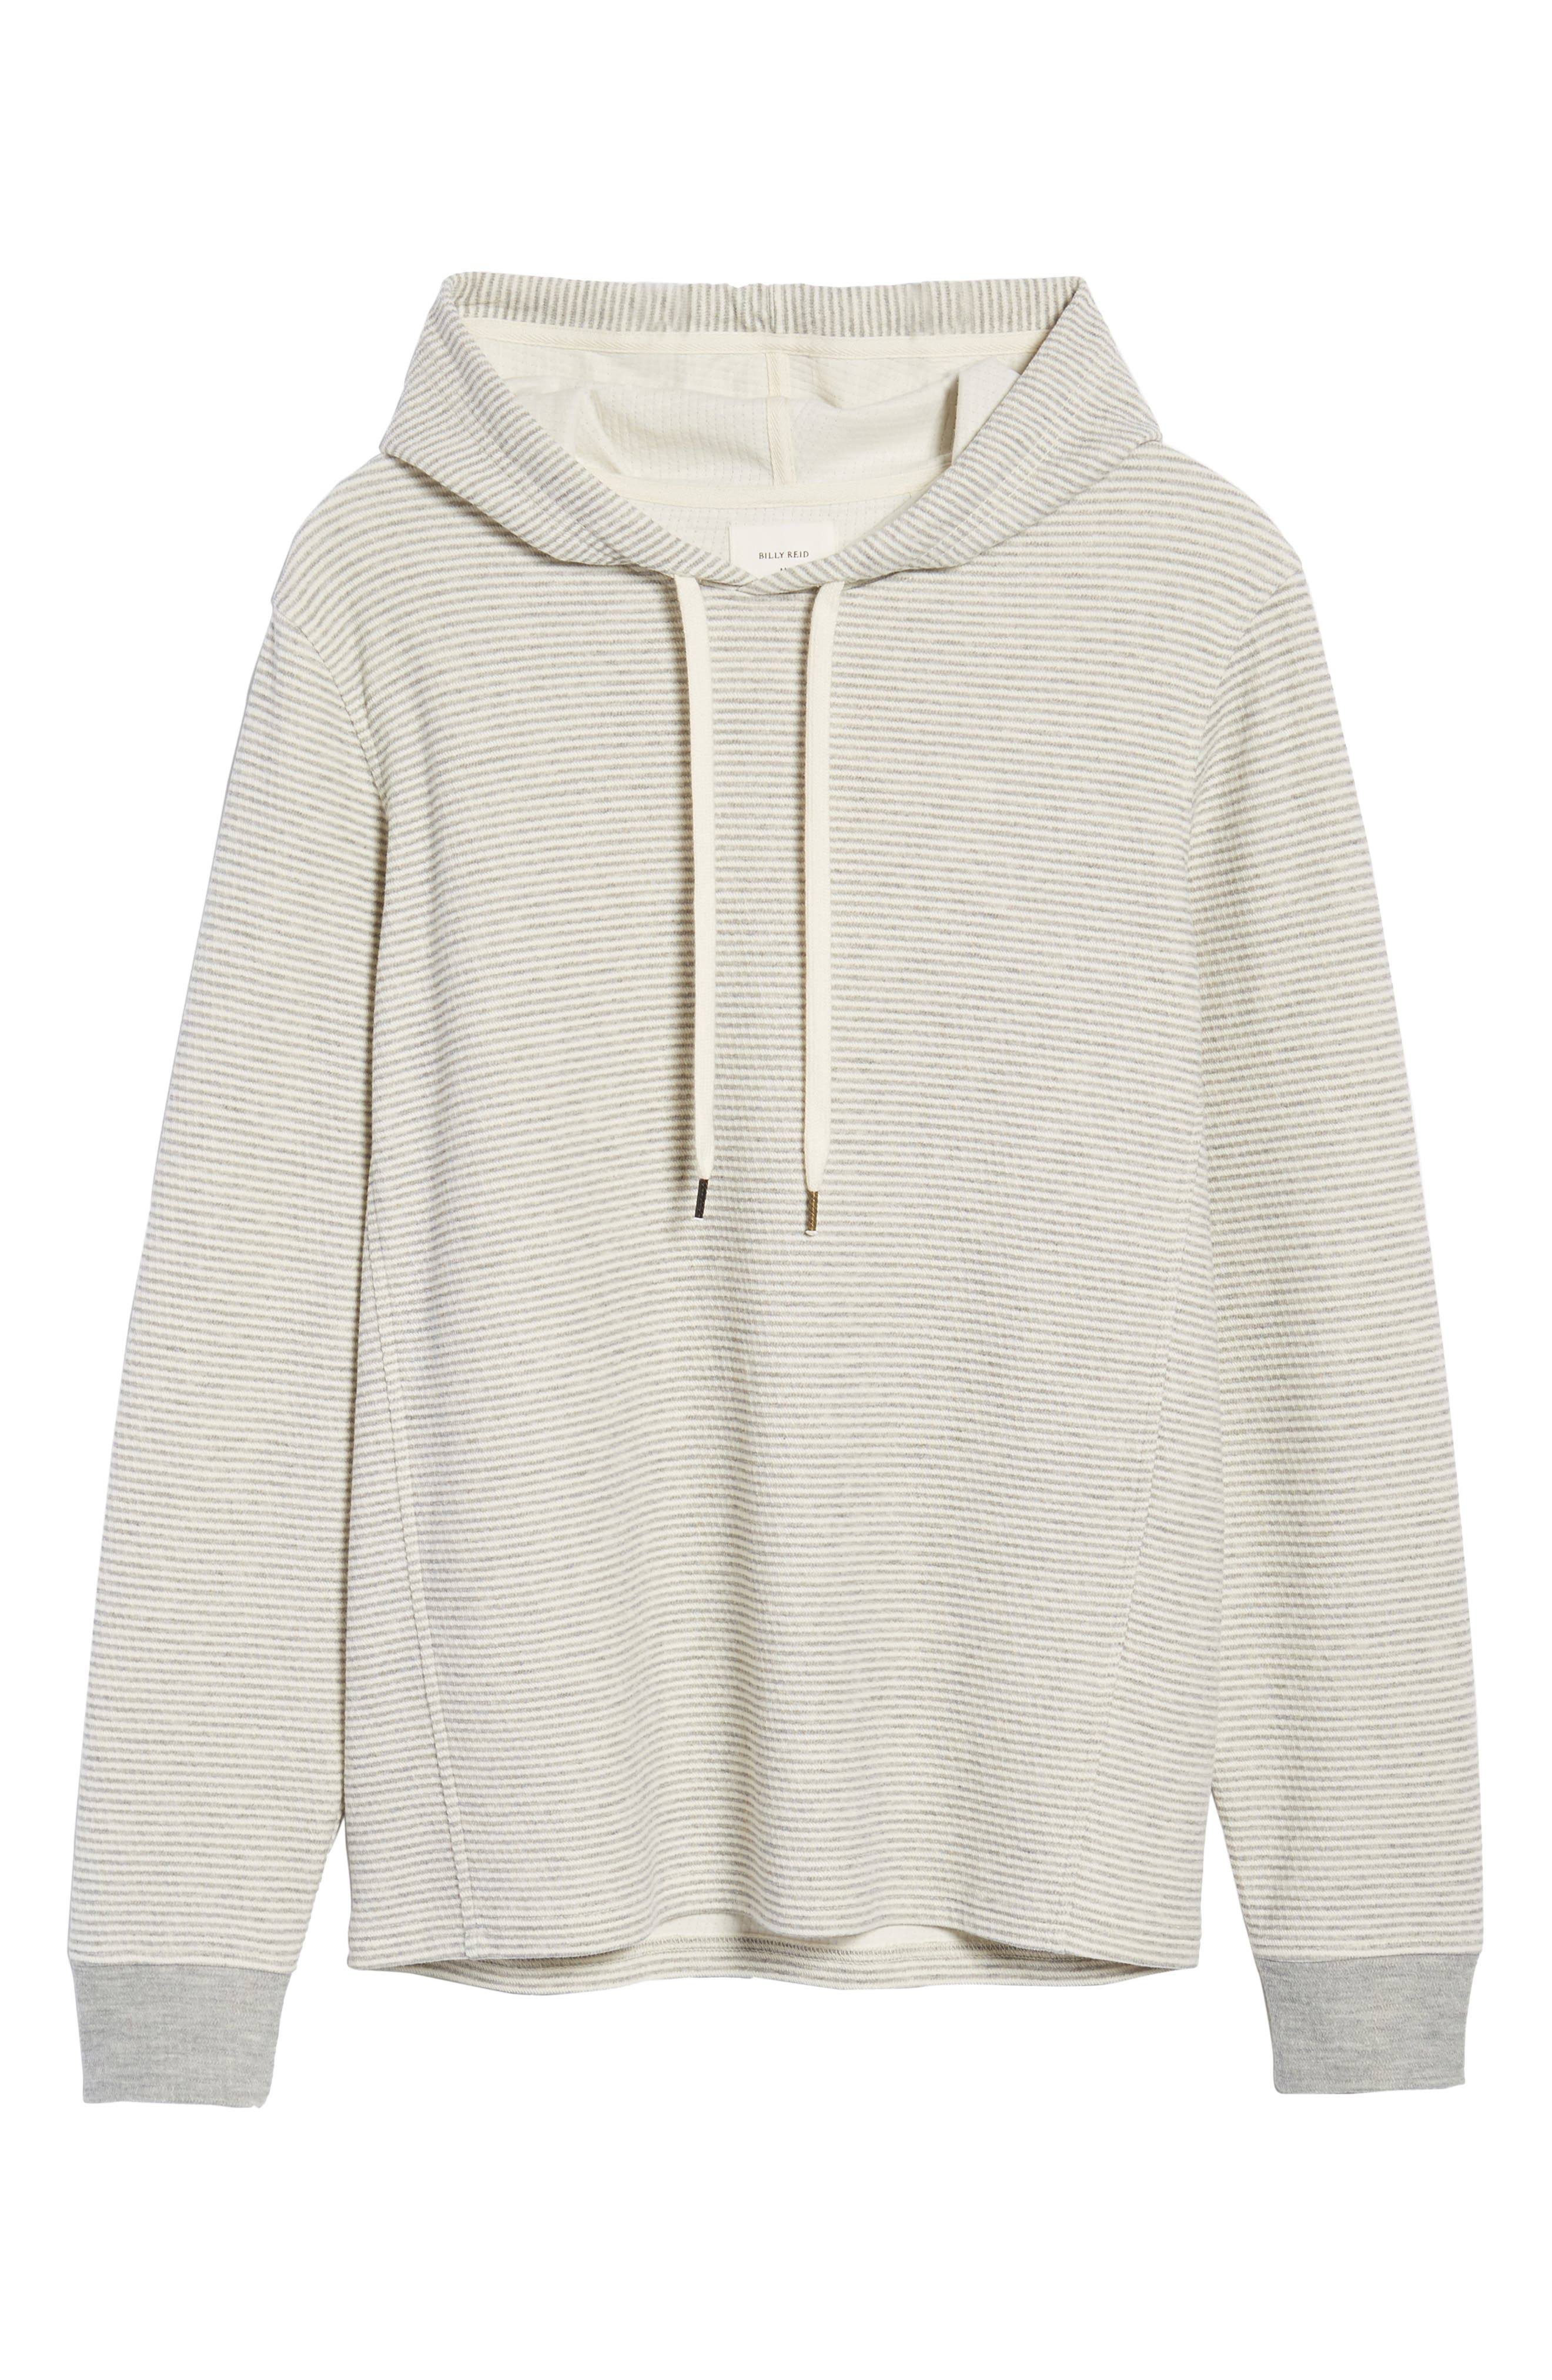 Cotton Blend Hoodie,                             Alternate thumbnail 6, color,                             GREY/ NATURAL